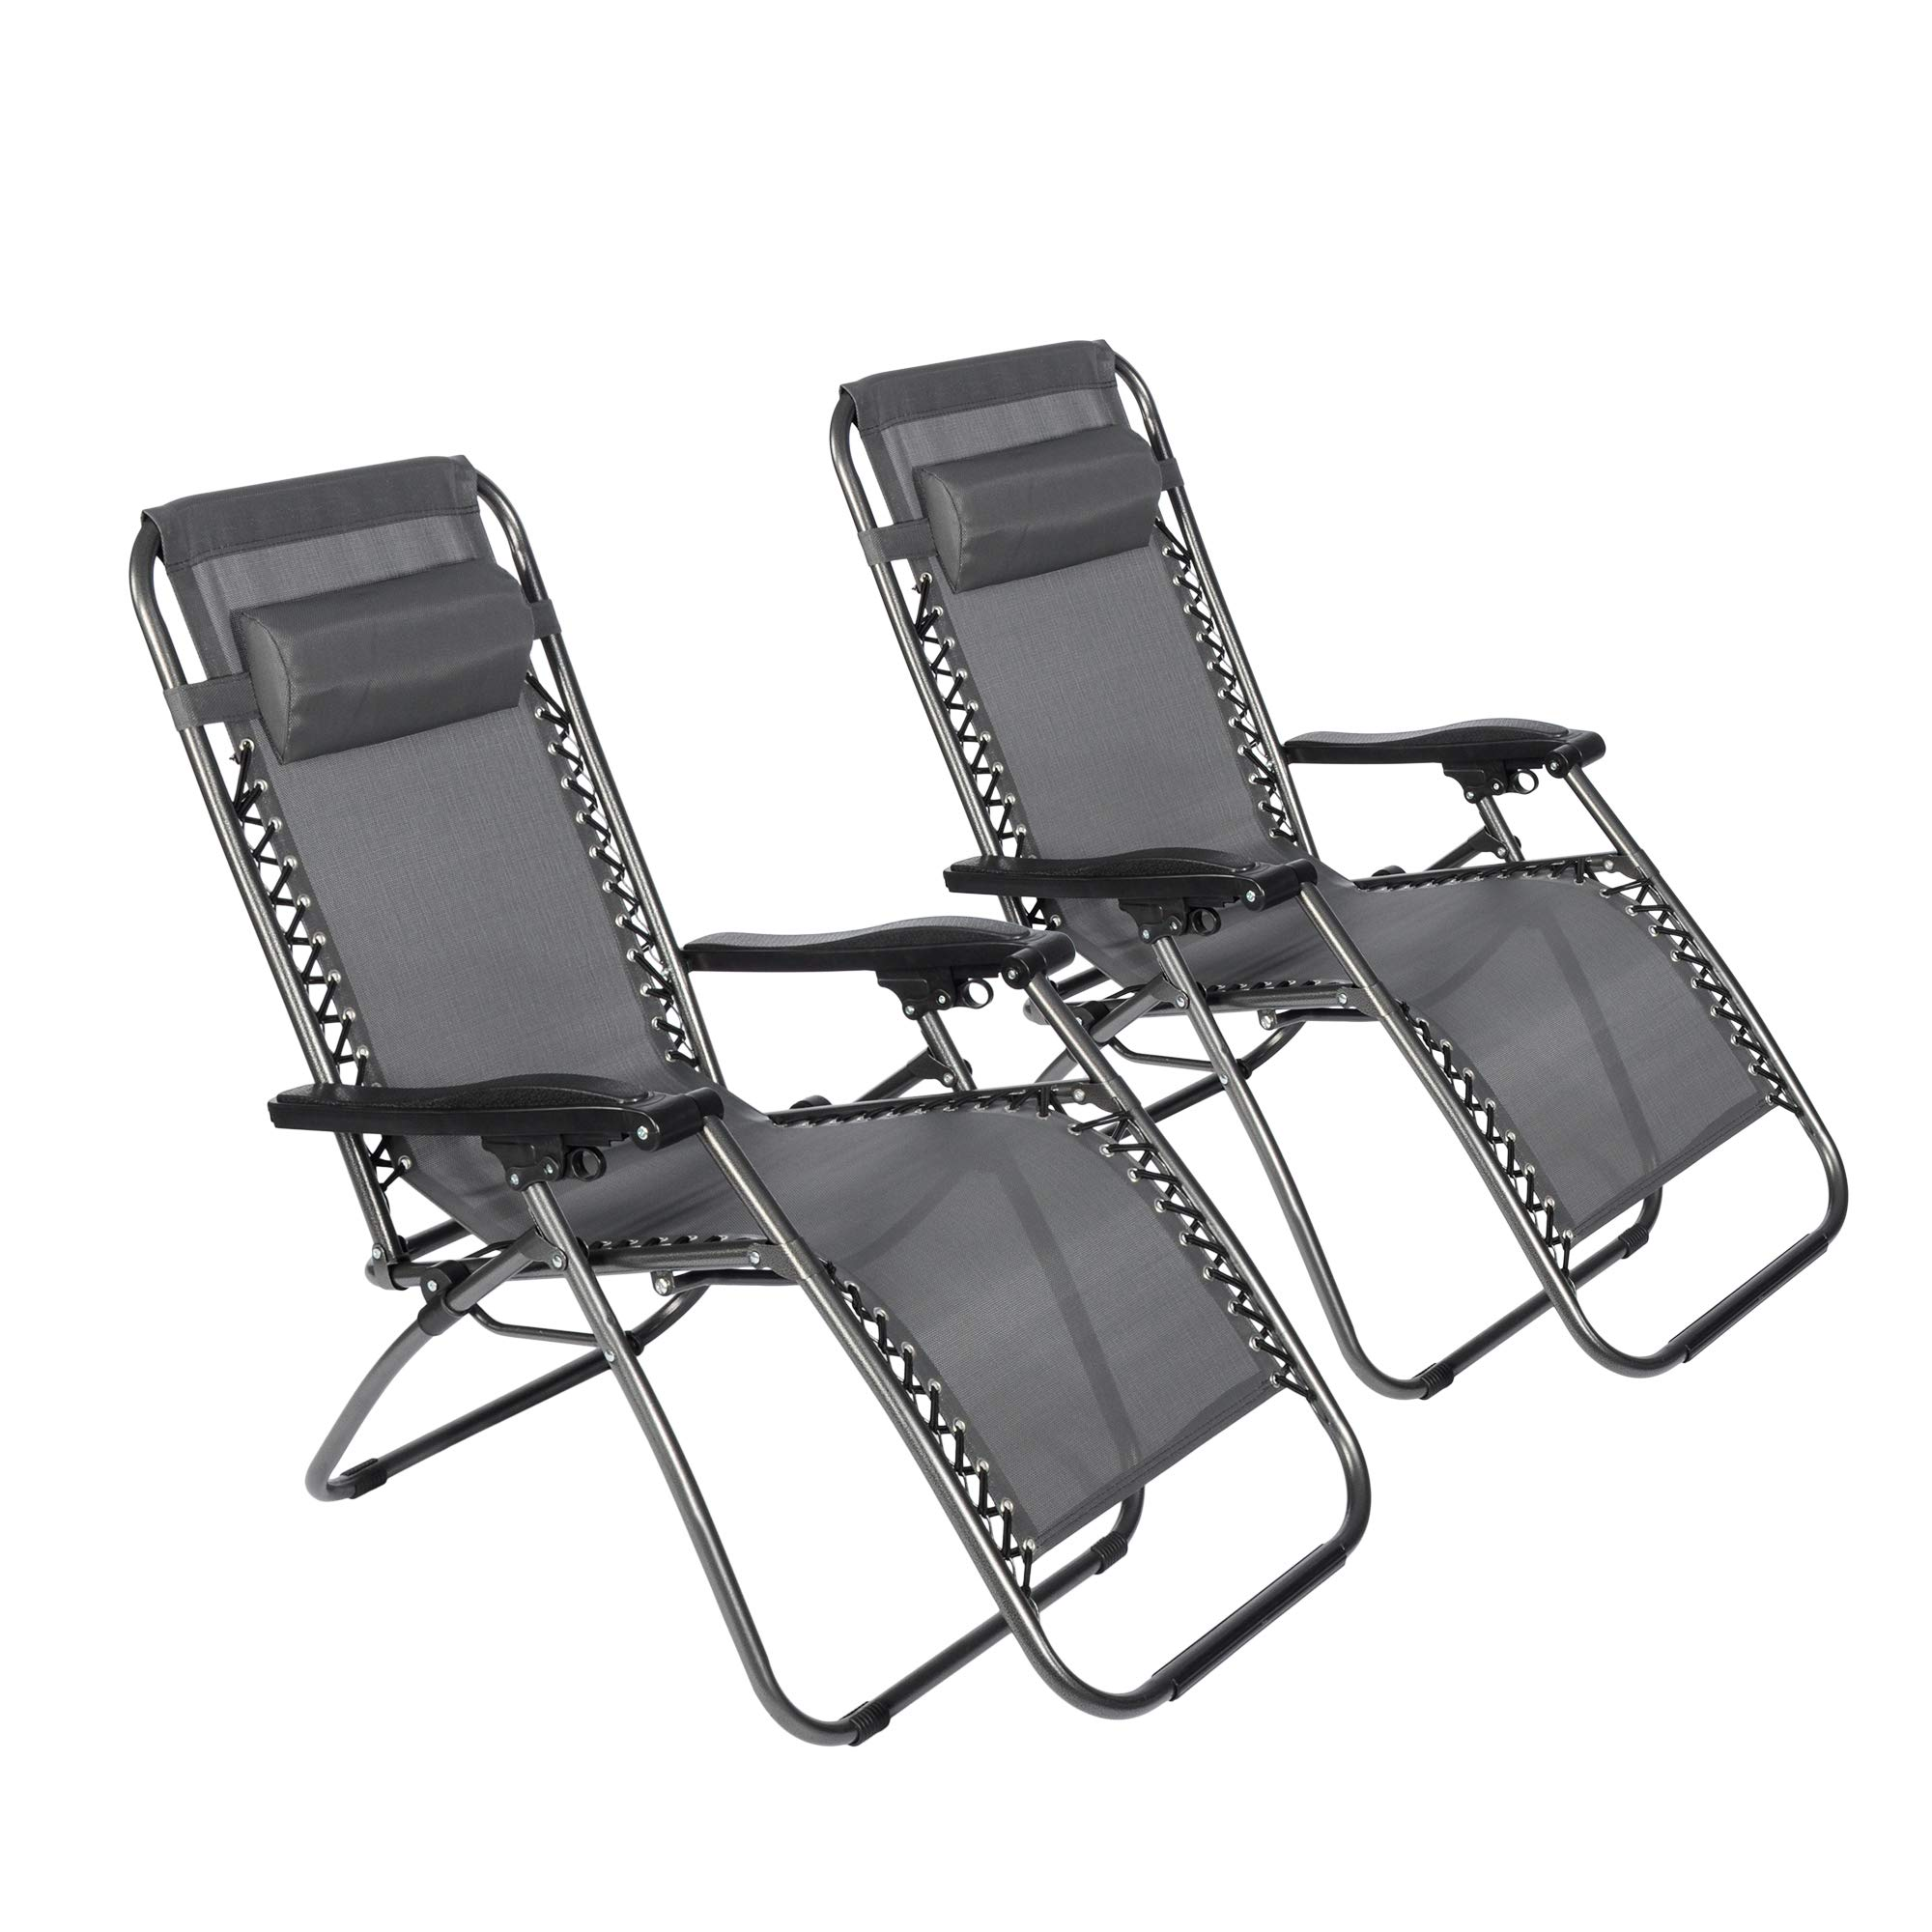 LUCKYERMORE Zero Gravity Chair 2-Pack Outdoor Patio Lawn Chairs Folding Portable Adjustable Chaise Lounge Recliners, Grey